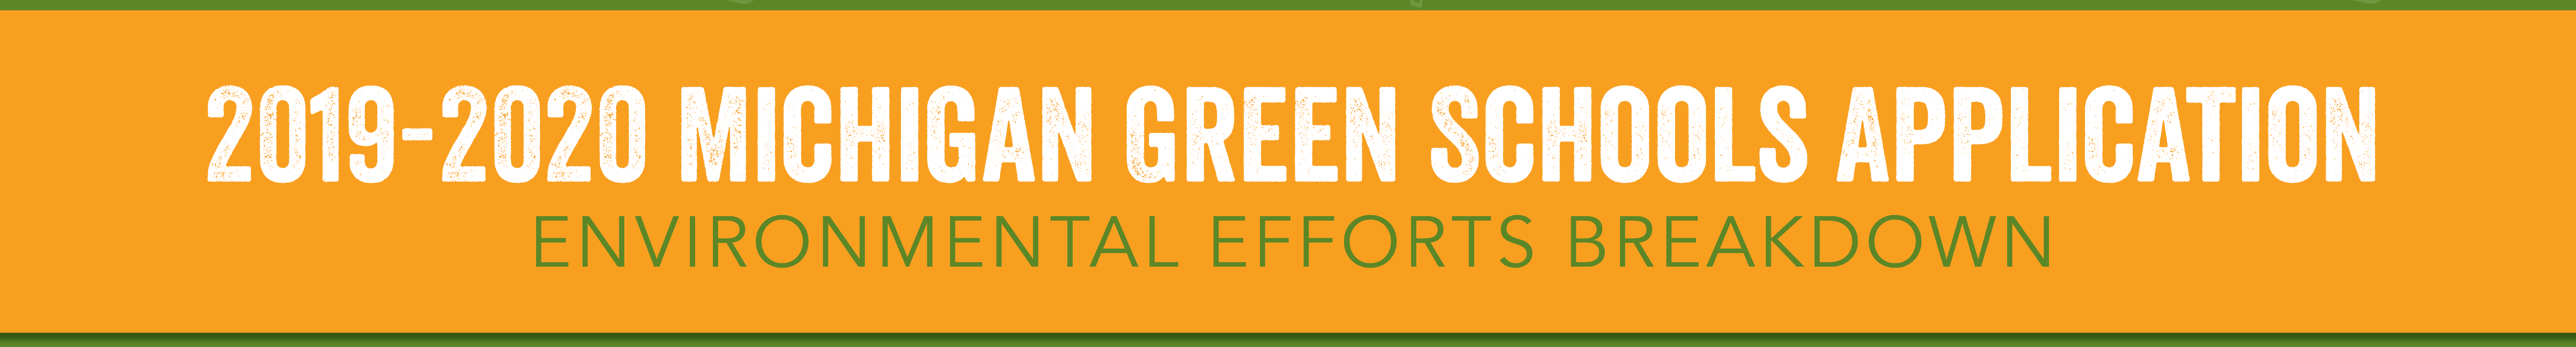 2019-2020 Michigan Green Schools Application - Environmental Efforts Breakdown